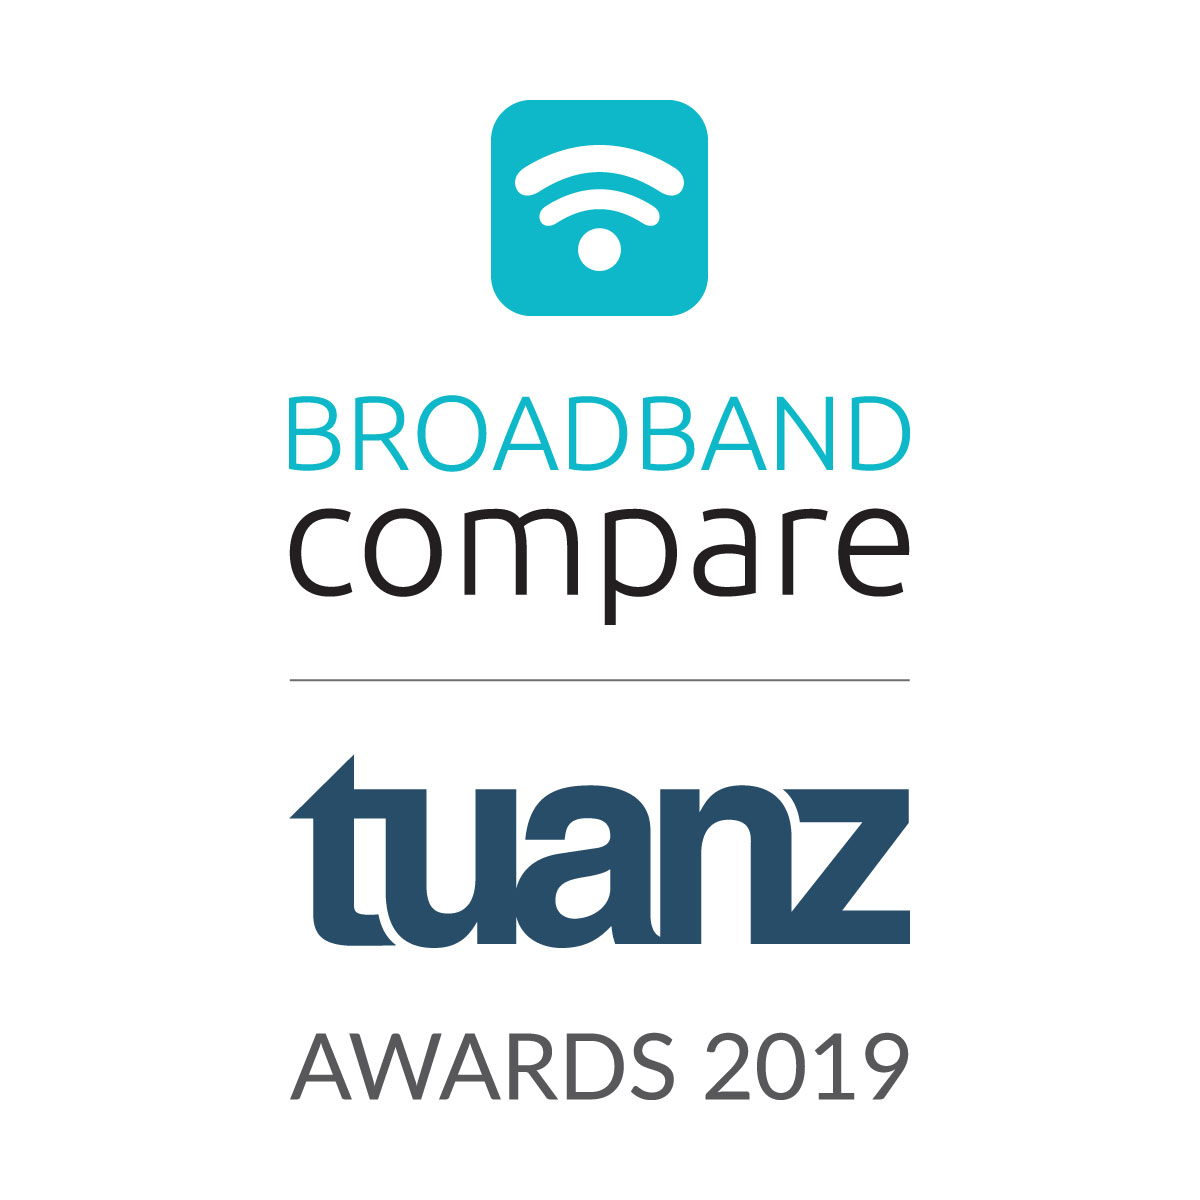 Broadband Compare TUANZ Awards 2019